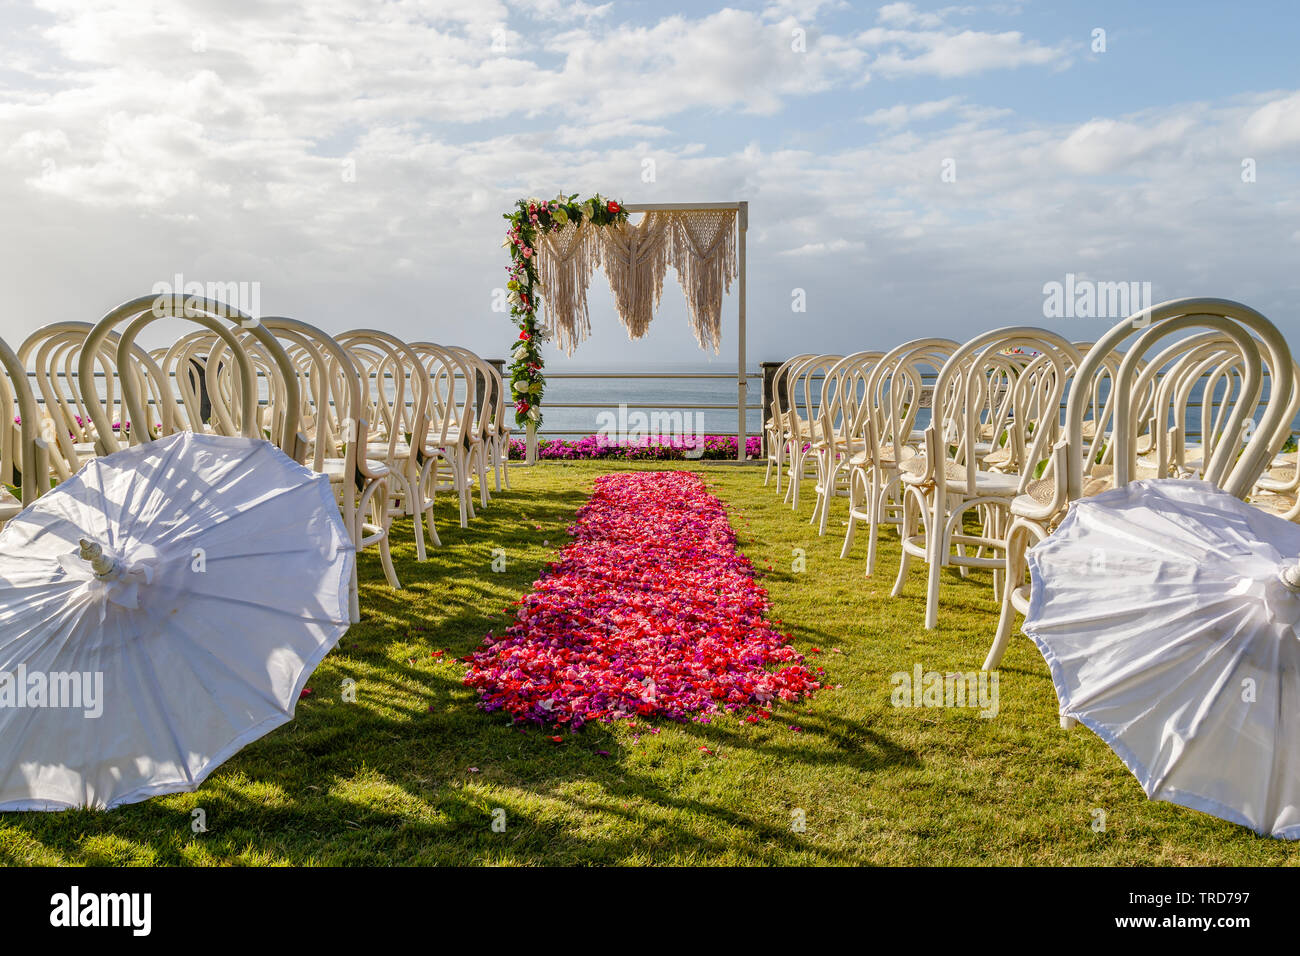 Wedding Arch In Boho Style Near The Ocean For Ceremony Decorated